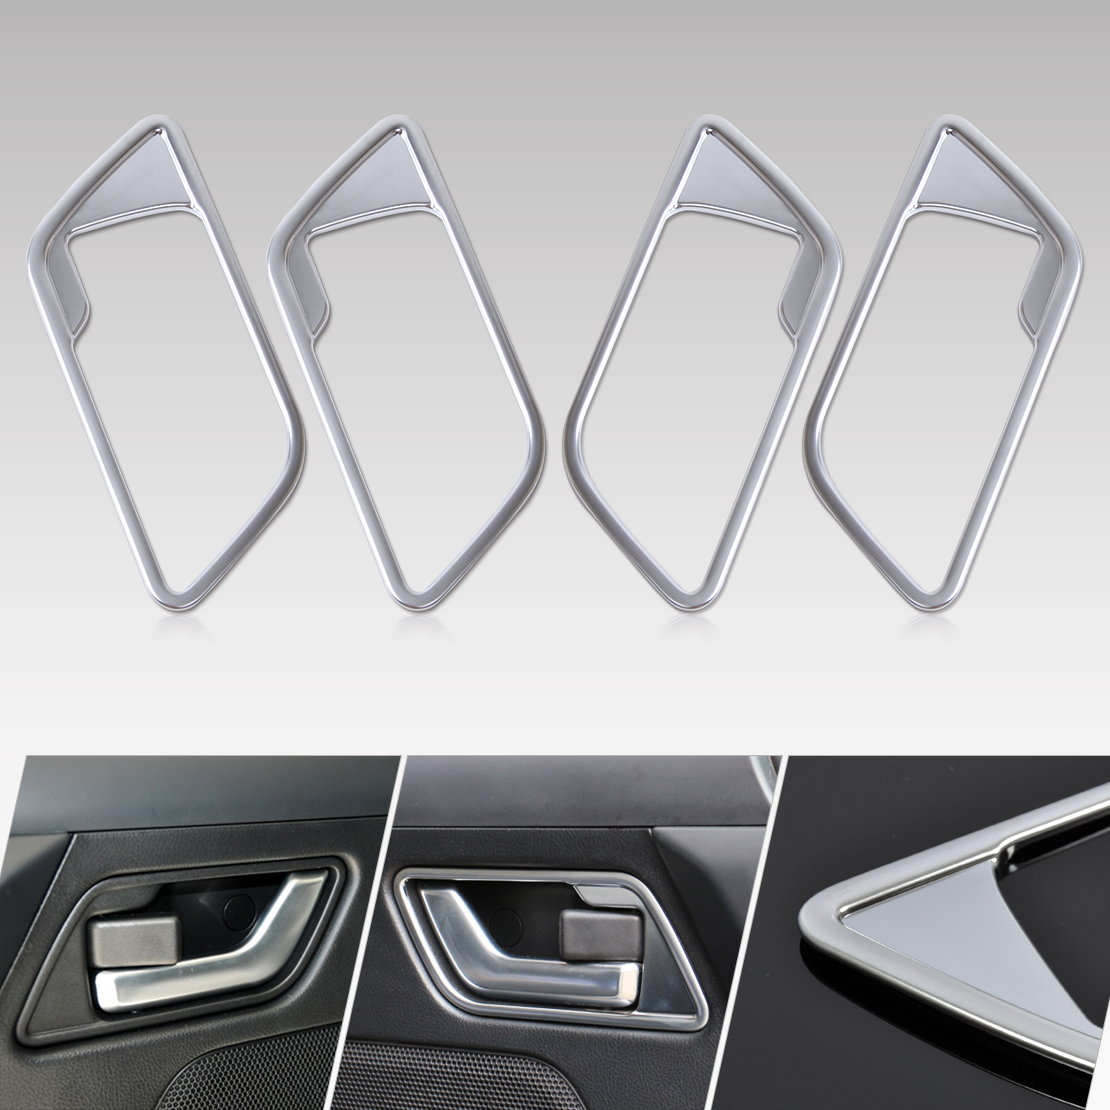 beler 4pcs New Car Interior Door Handle Cover Frame Trim for Land Rover FREELANDER 2 LR2 2008 2009 2010 2011 2012 2013 2014 2015